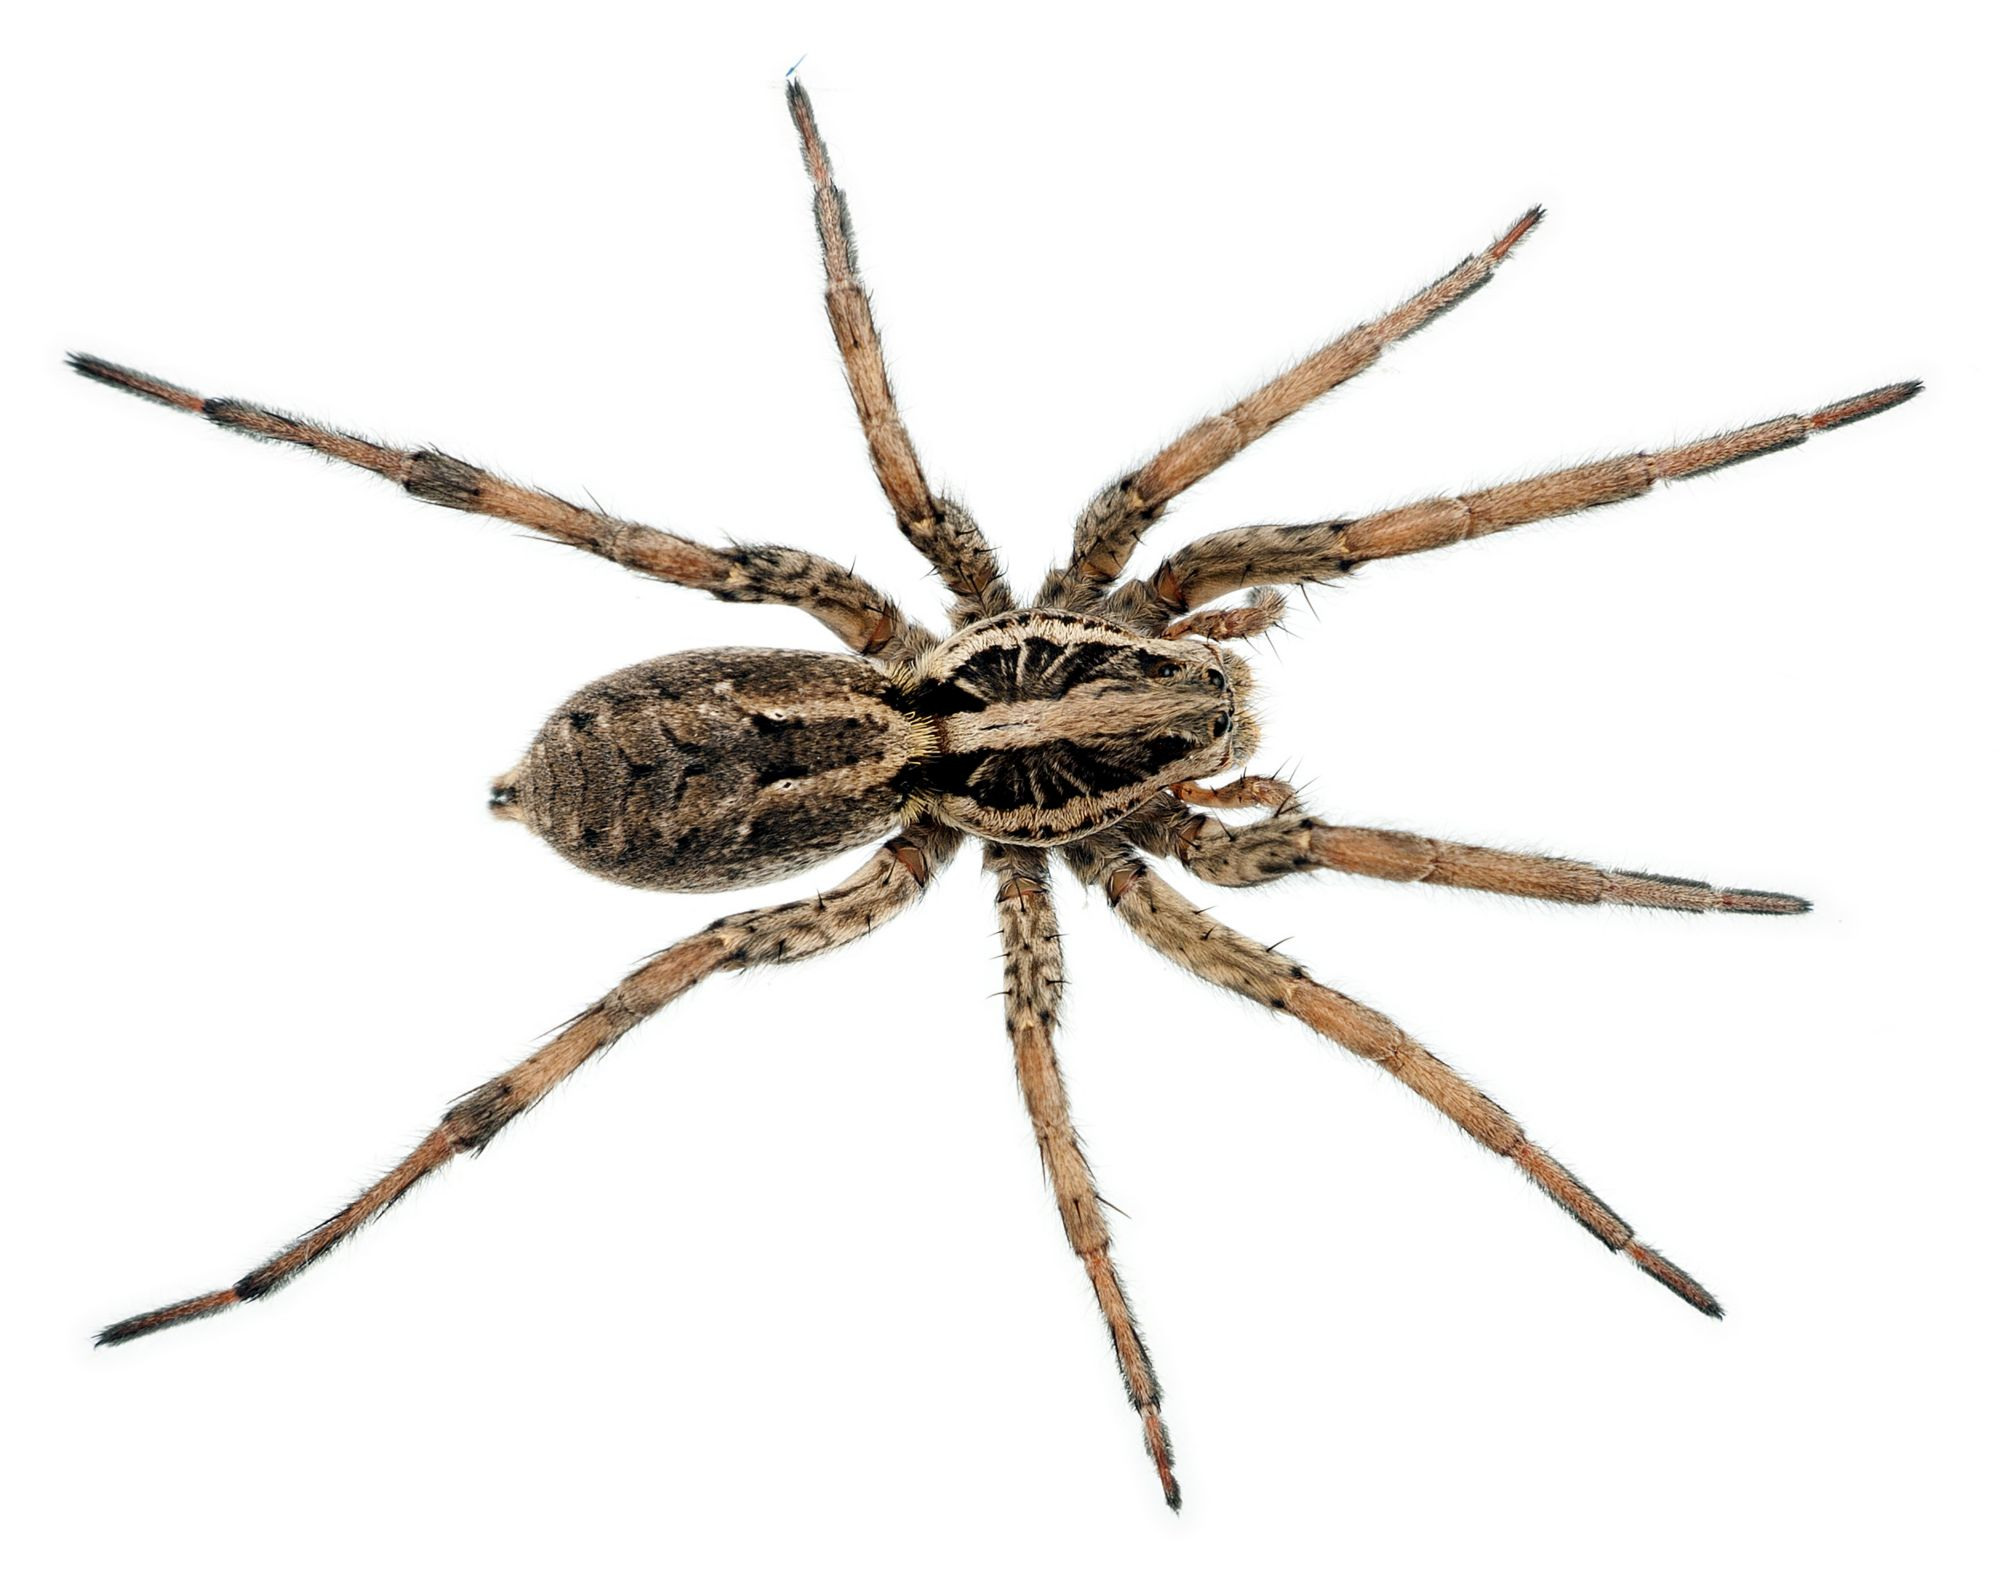 [Image: ter-insects-wolf-spider-article-2]